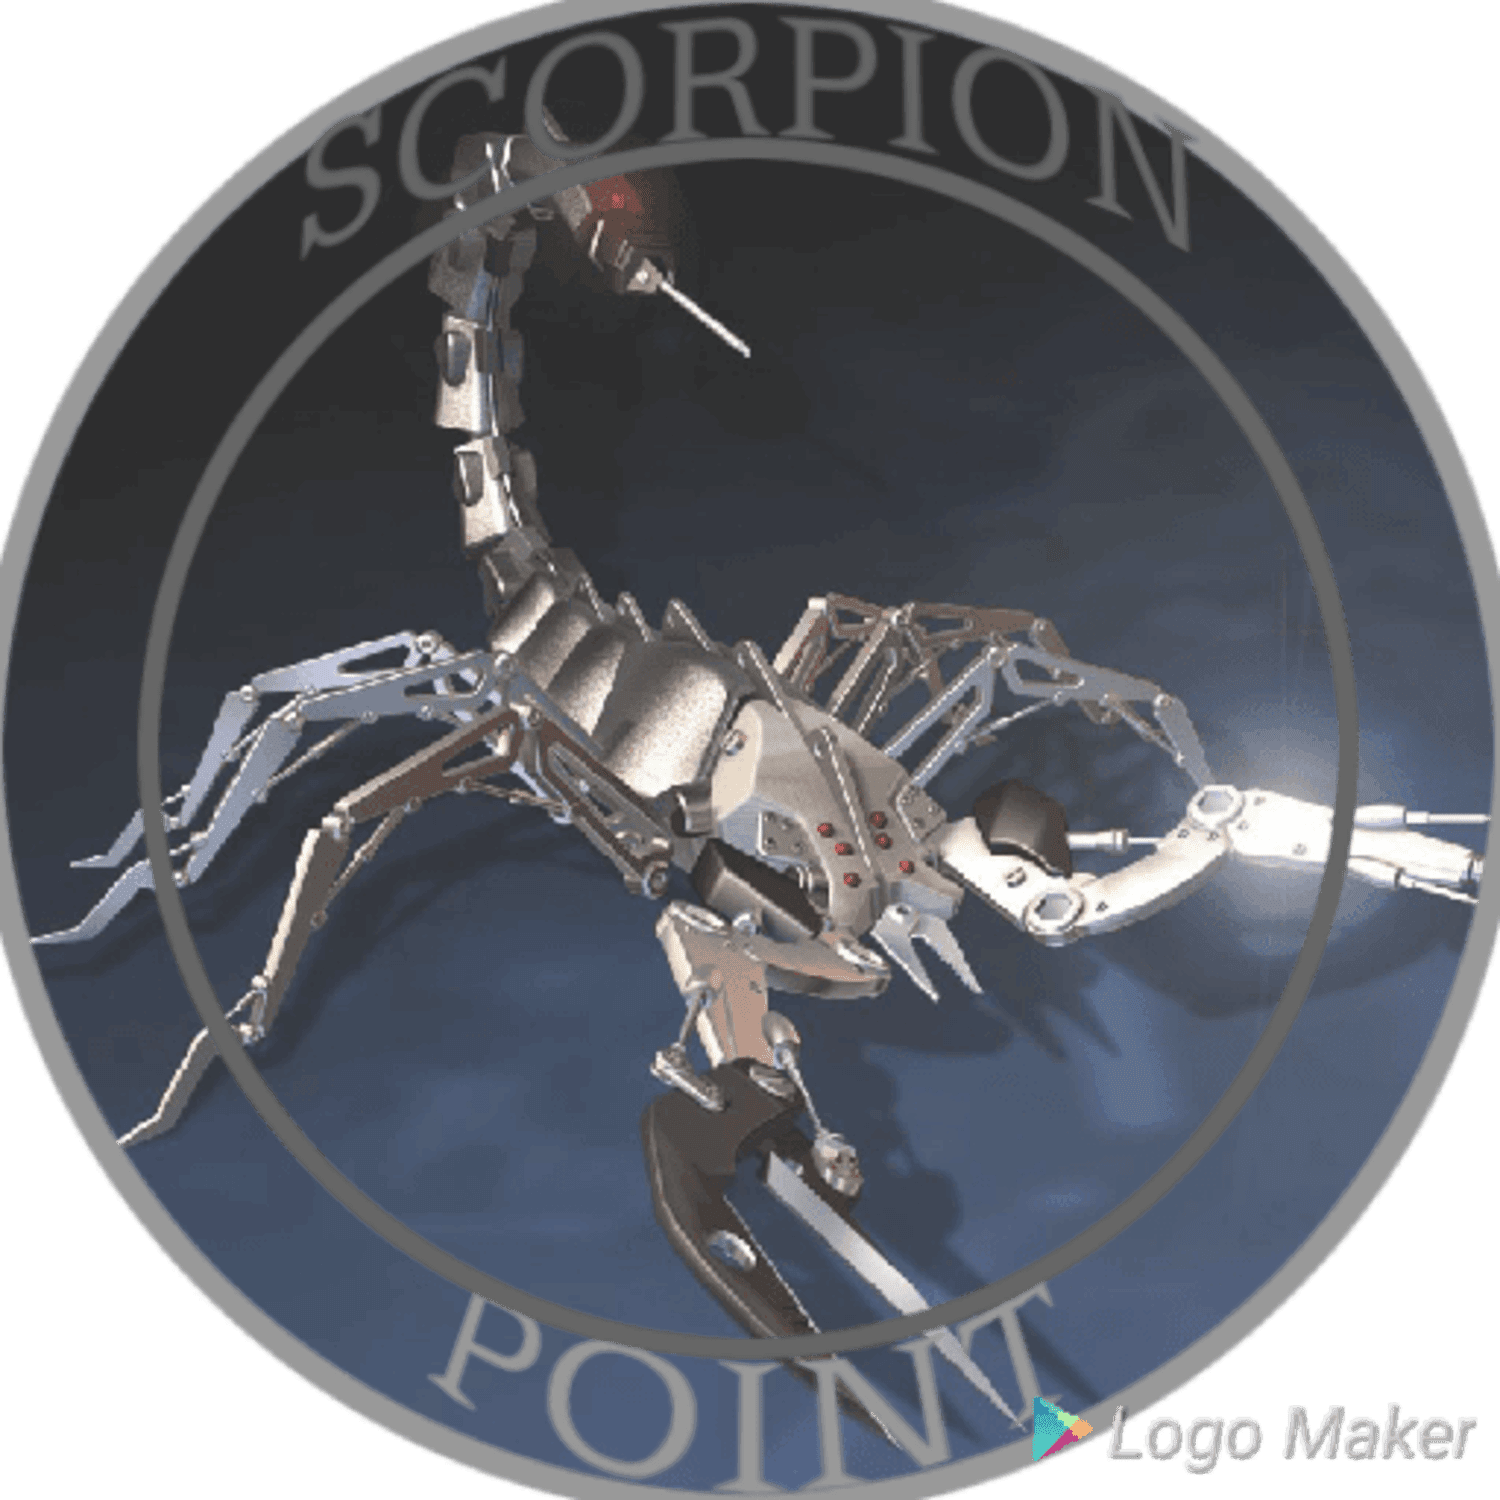 Scorpion Point LLC